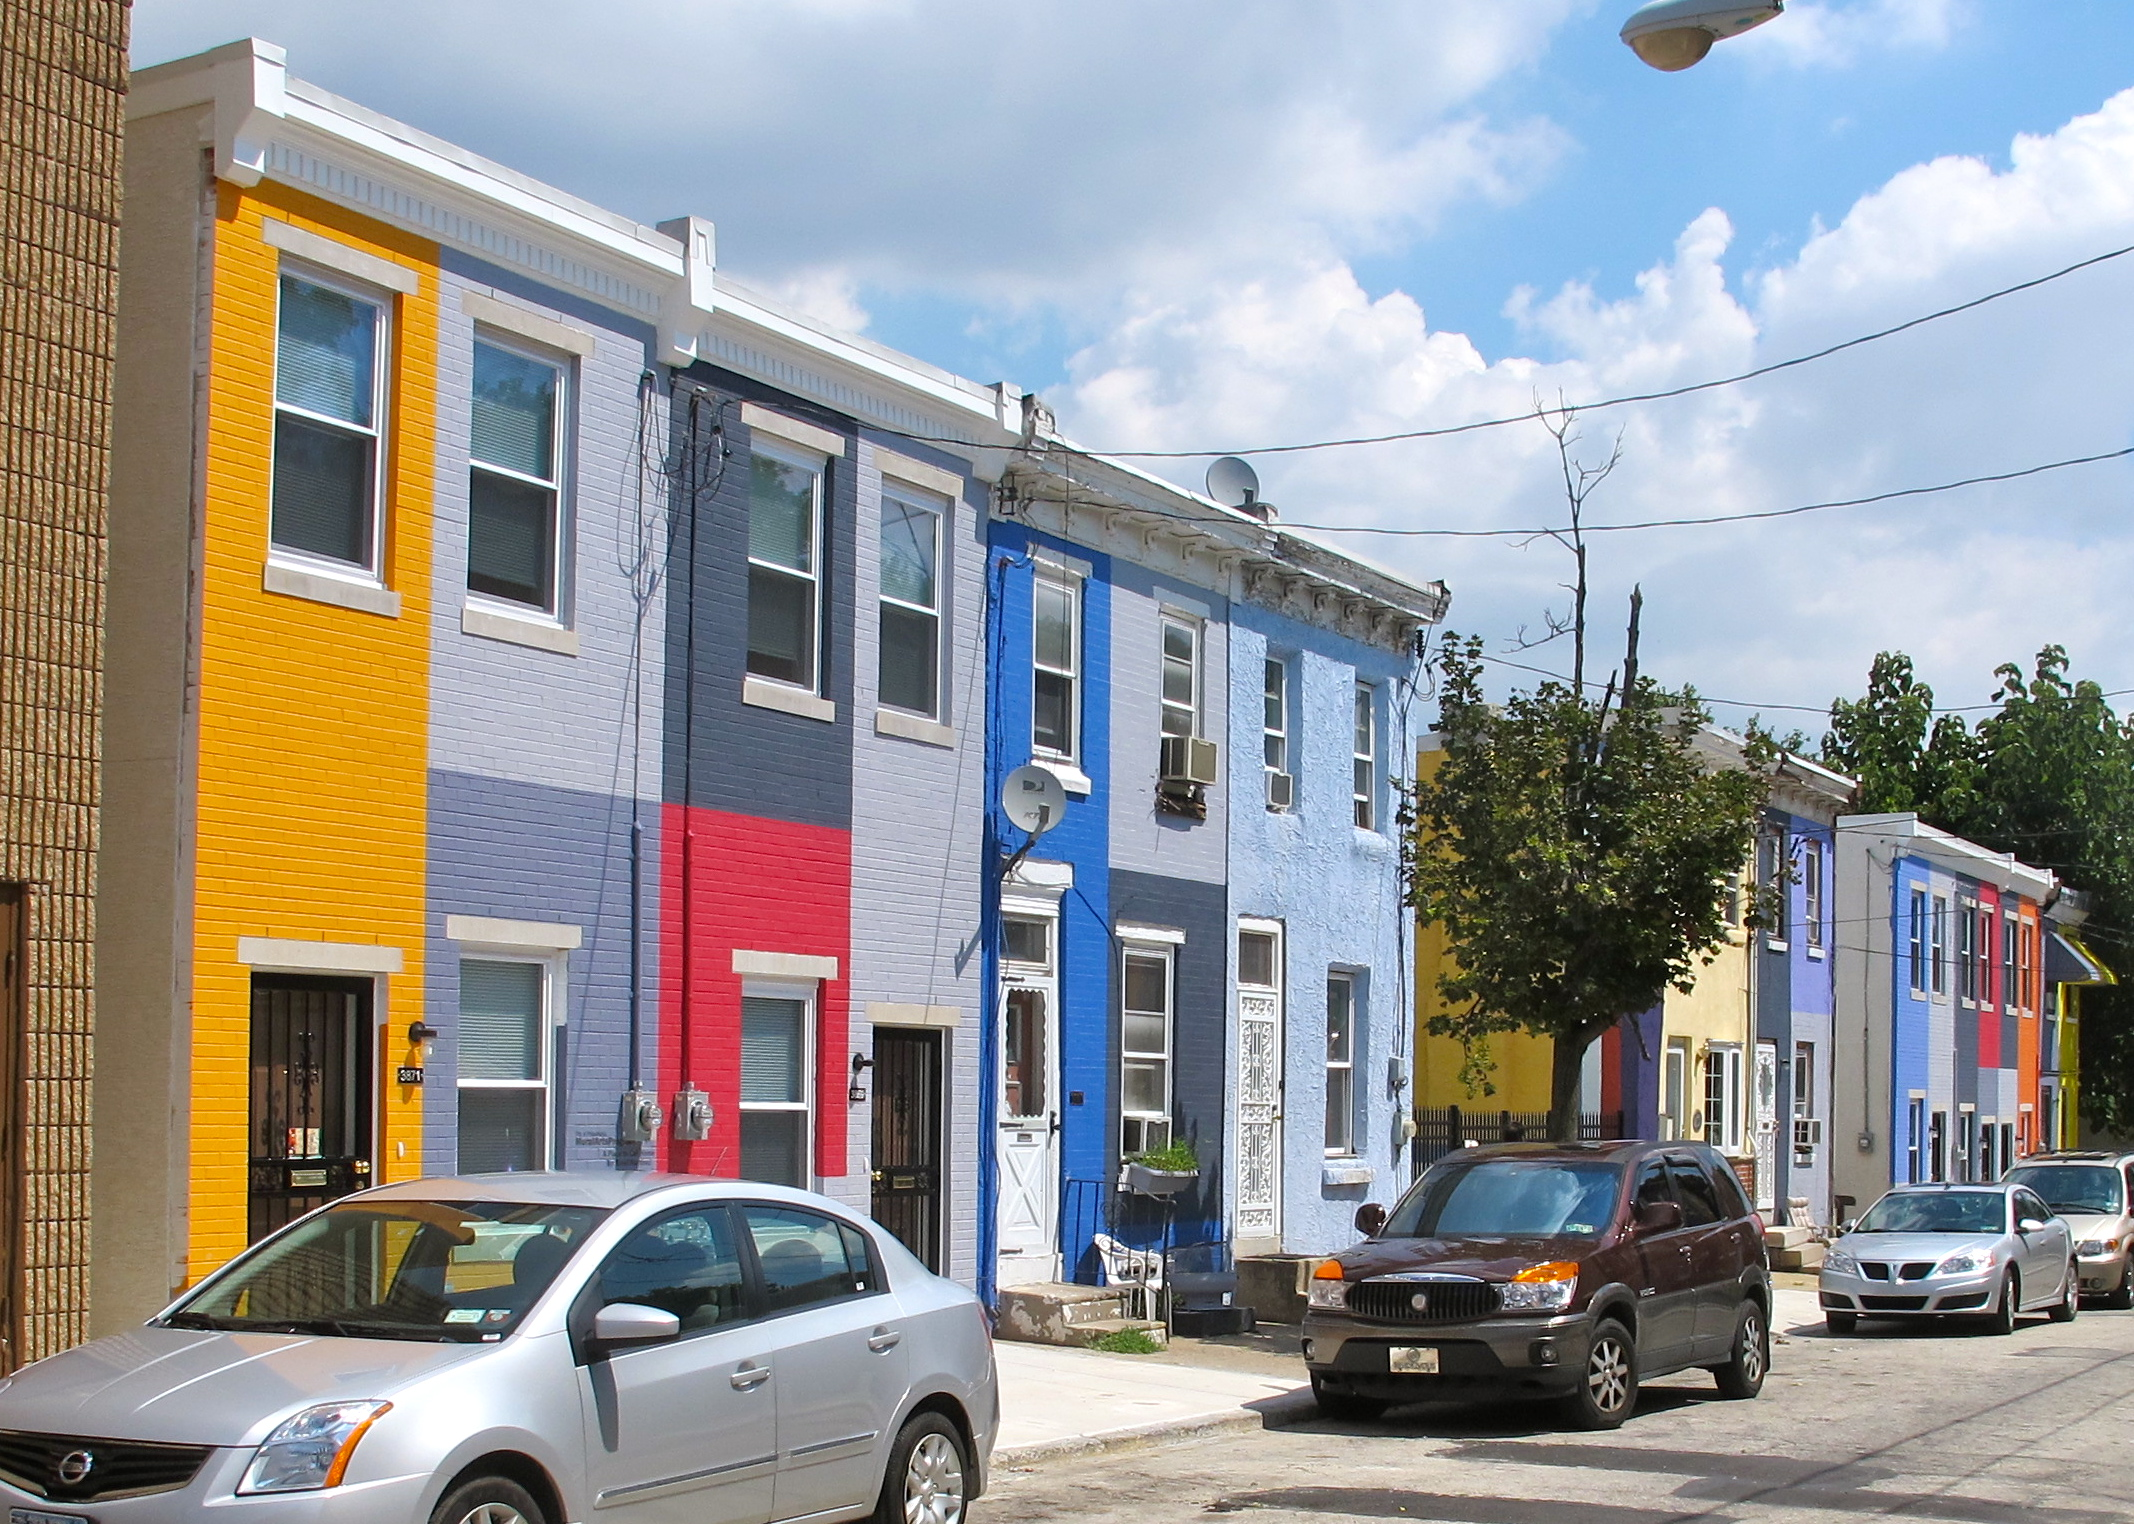 As part of its project A Place to Call Home, the Mural Arts Project painted the facades of the more than 30 homes on the 3800 block of Melon Street.